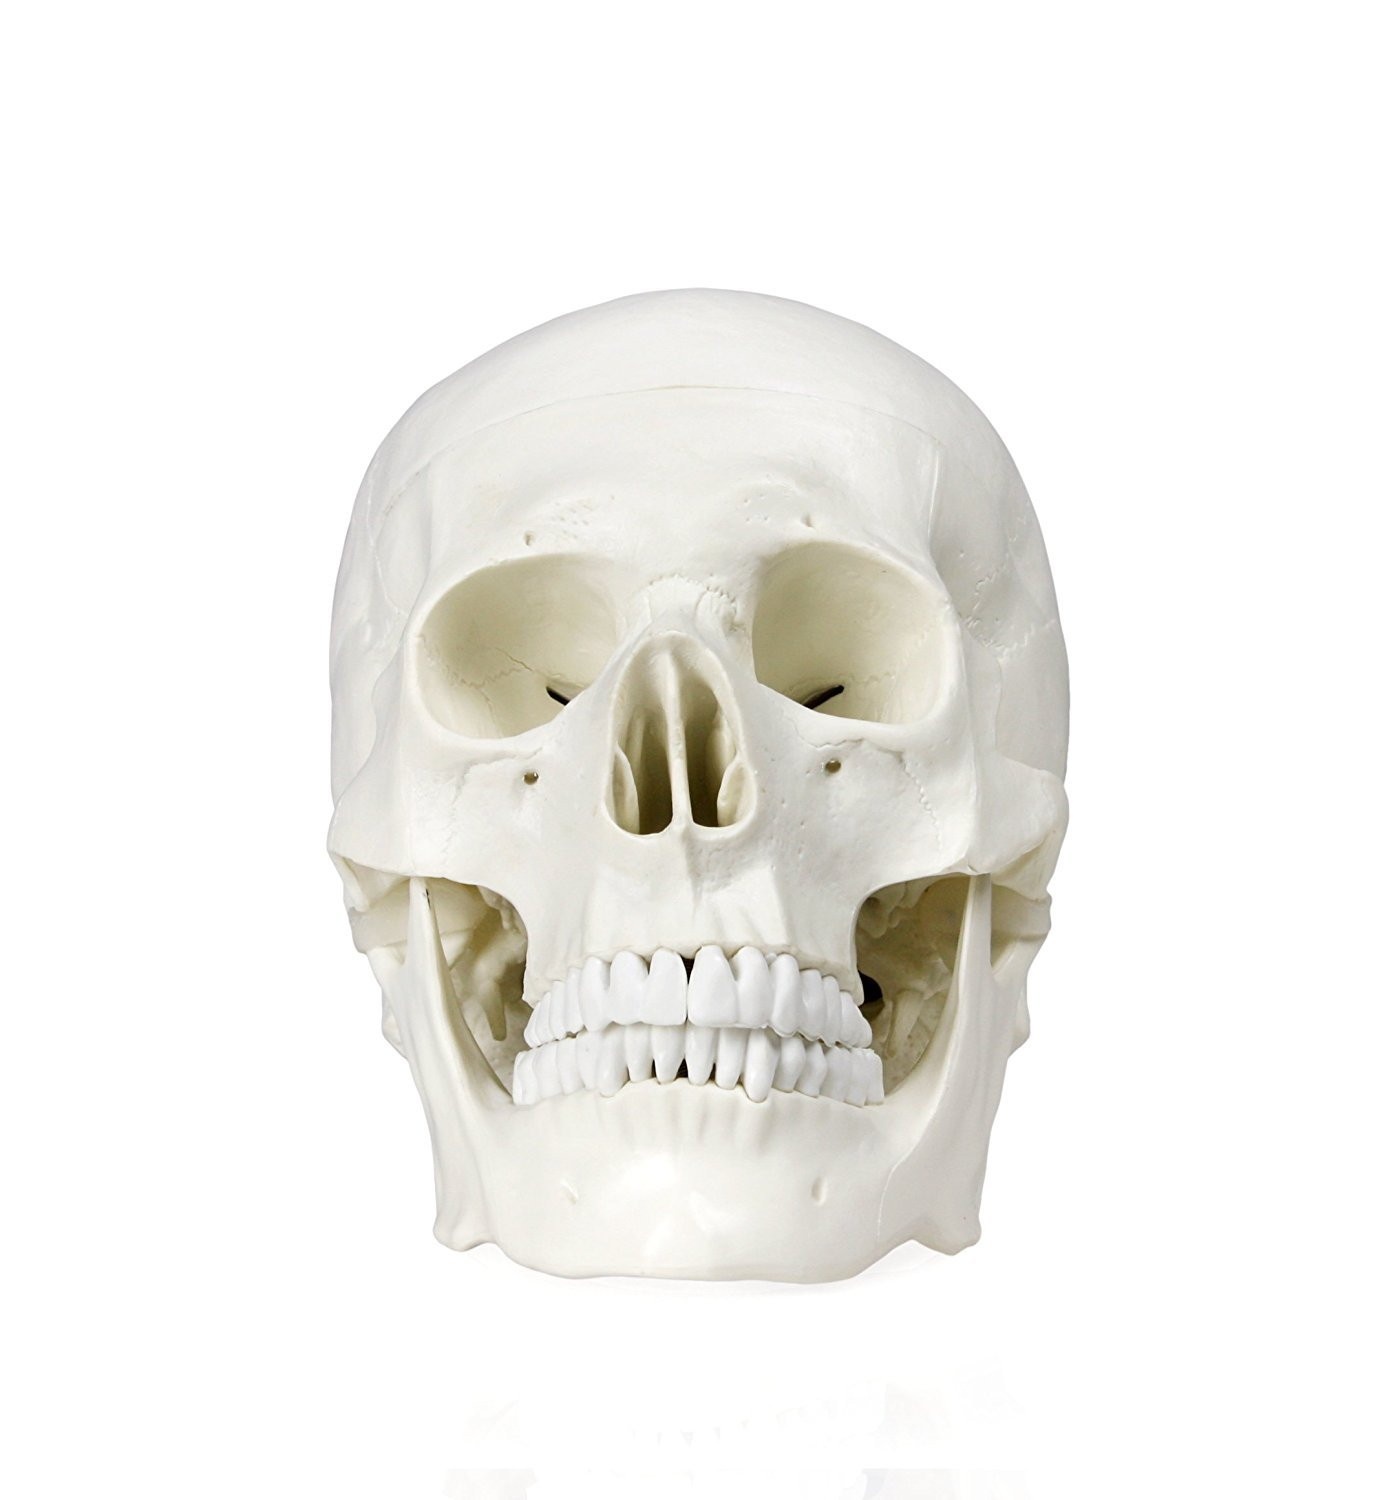 Human Adult Skull Anatomical Model, Life Sized (9' Height) Removable Skull Cap 3 Parts Back to School Life Sized (9 Height) Removable Skull Cap 3 Parts Back to School OIF